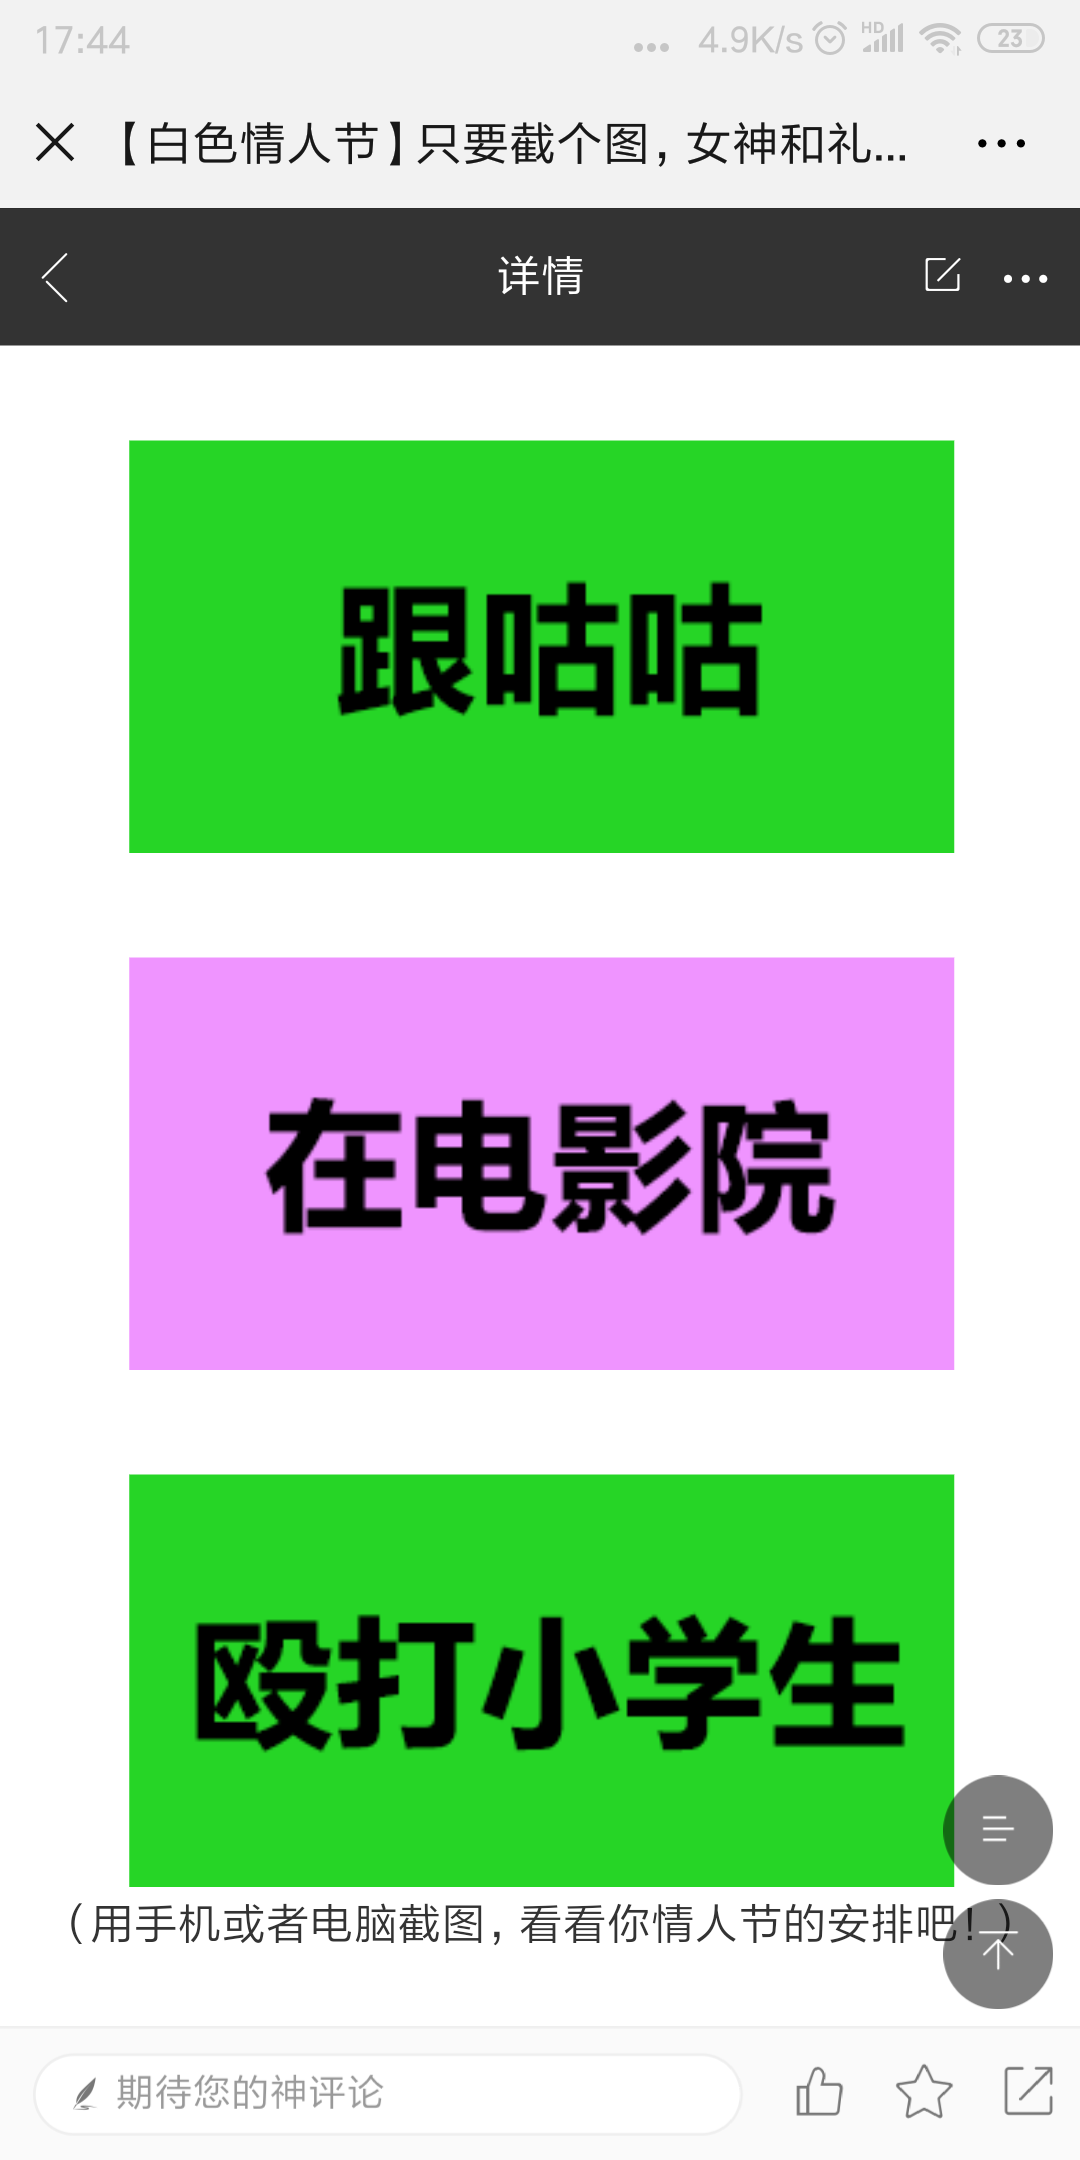 Screenshot_2019-03-13-17-44-21-118_com.tencent.mm.png